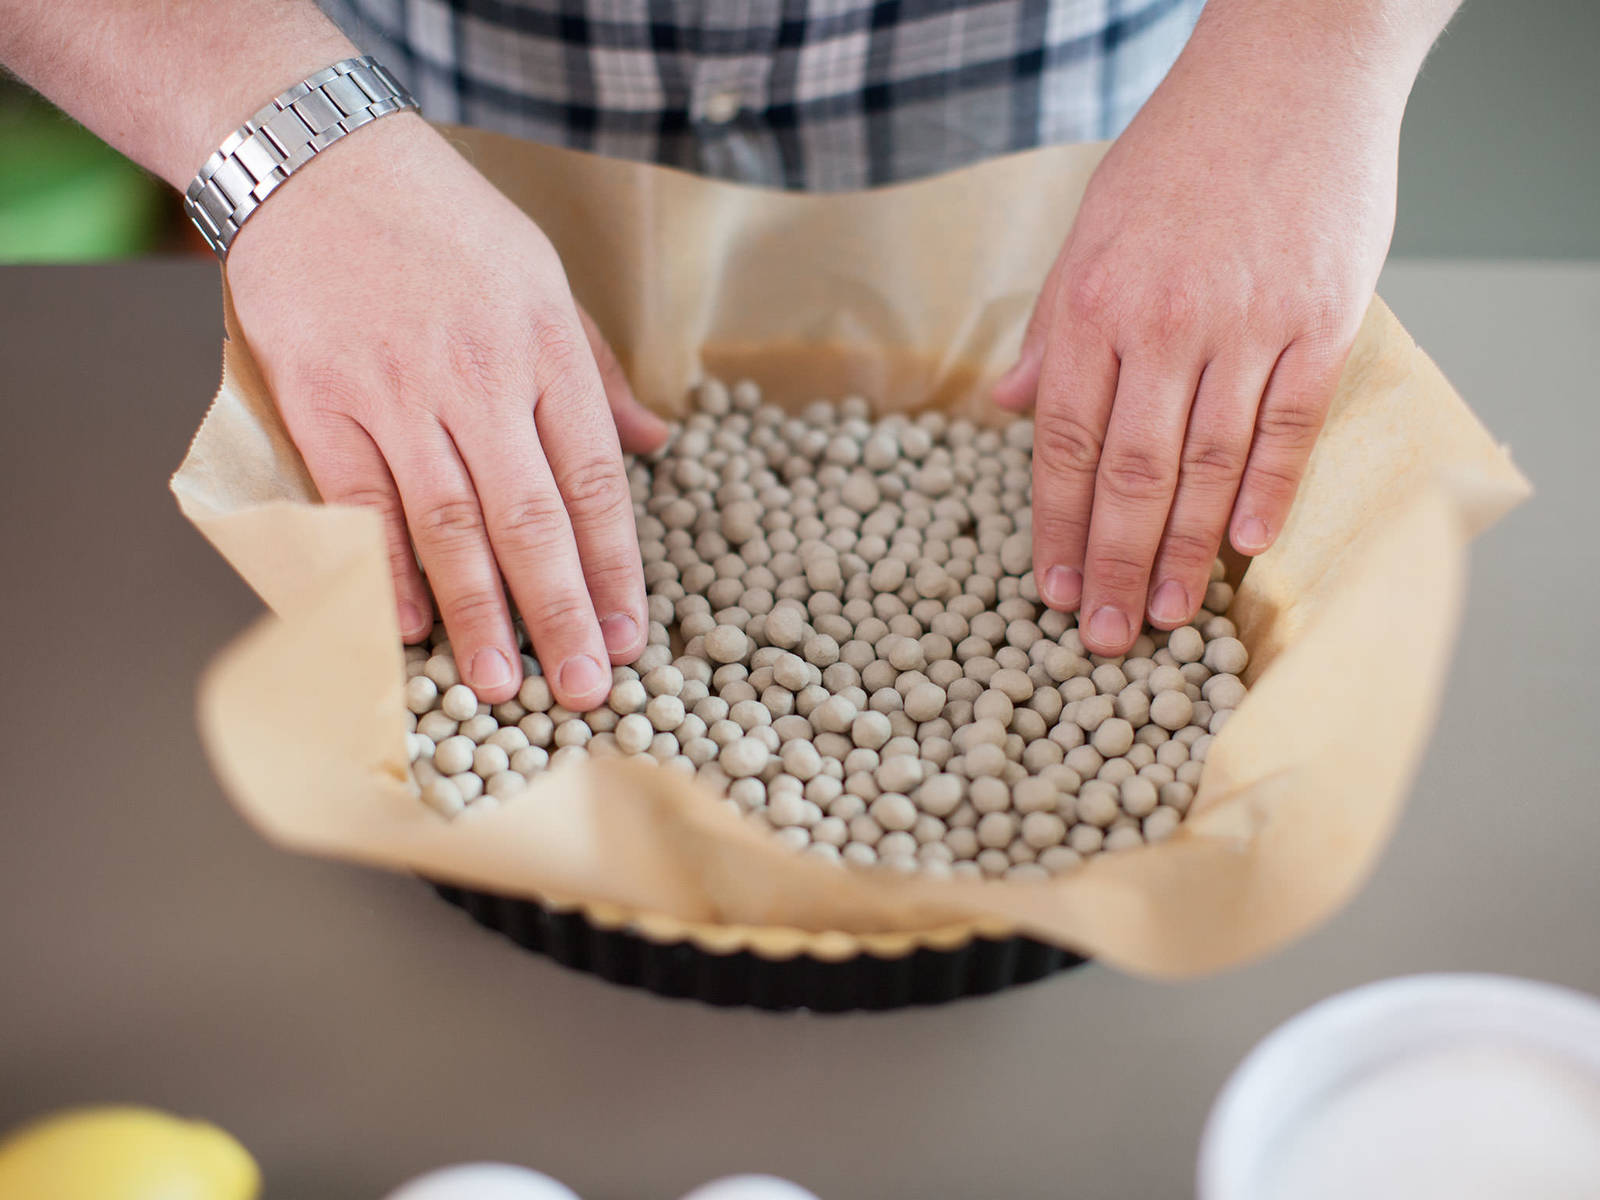 Preheat oven to 200°C/400°F. Carefully place a sheet of parchment paper on the crust and fill with pie weights. Blind bake the crust for 20 – 25 min. Transfer out of oven, remove pie weights, and set aside to cool. Reduce oven temperature to 180°C/350°F.